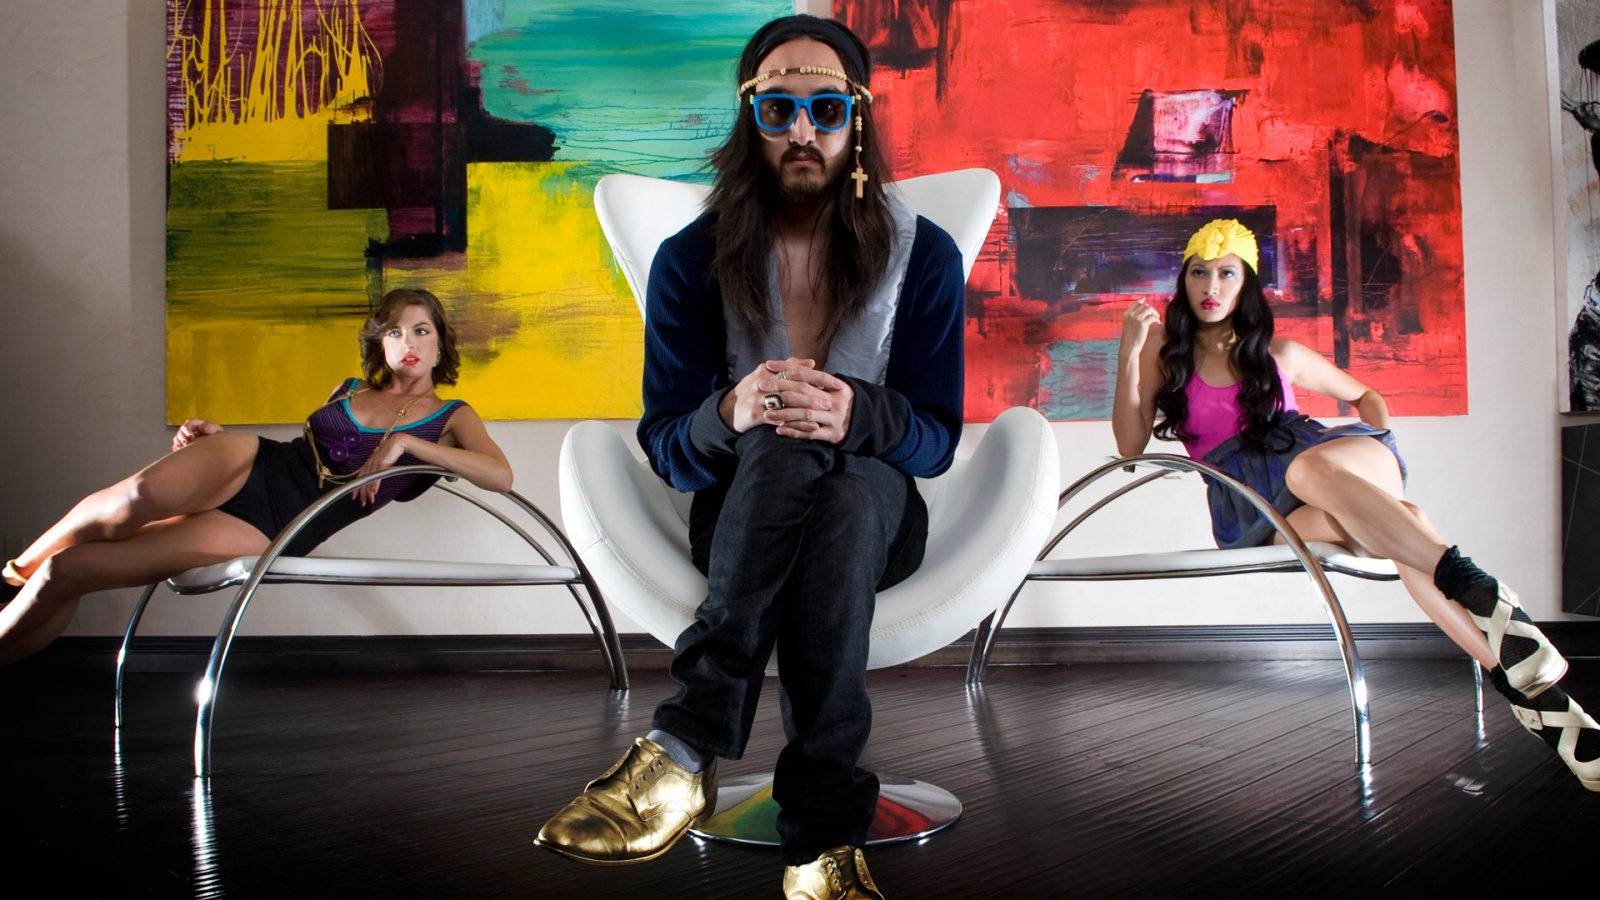 1600x900 Steve Aoki wallpaper, music and dance wallpapers